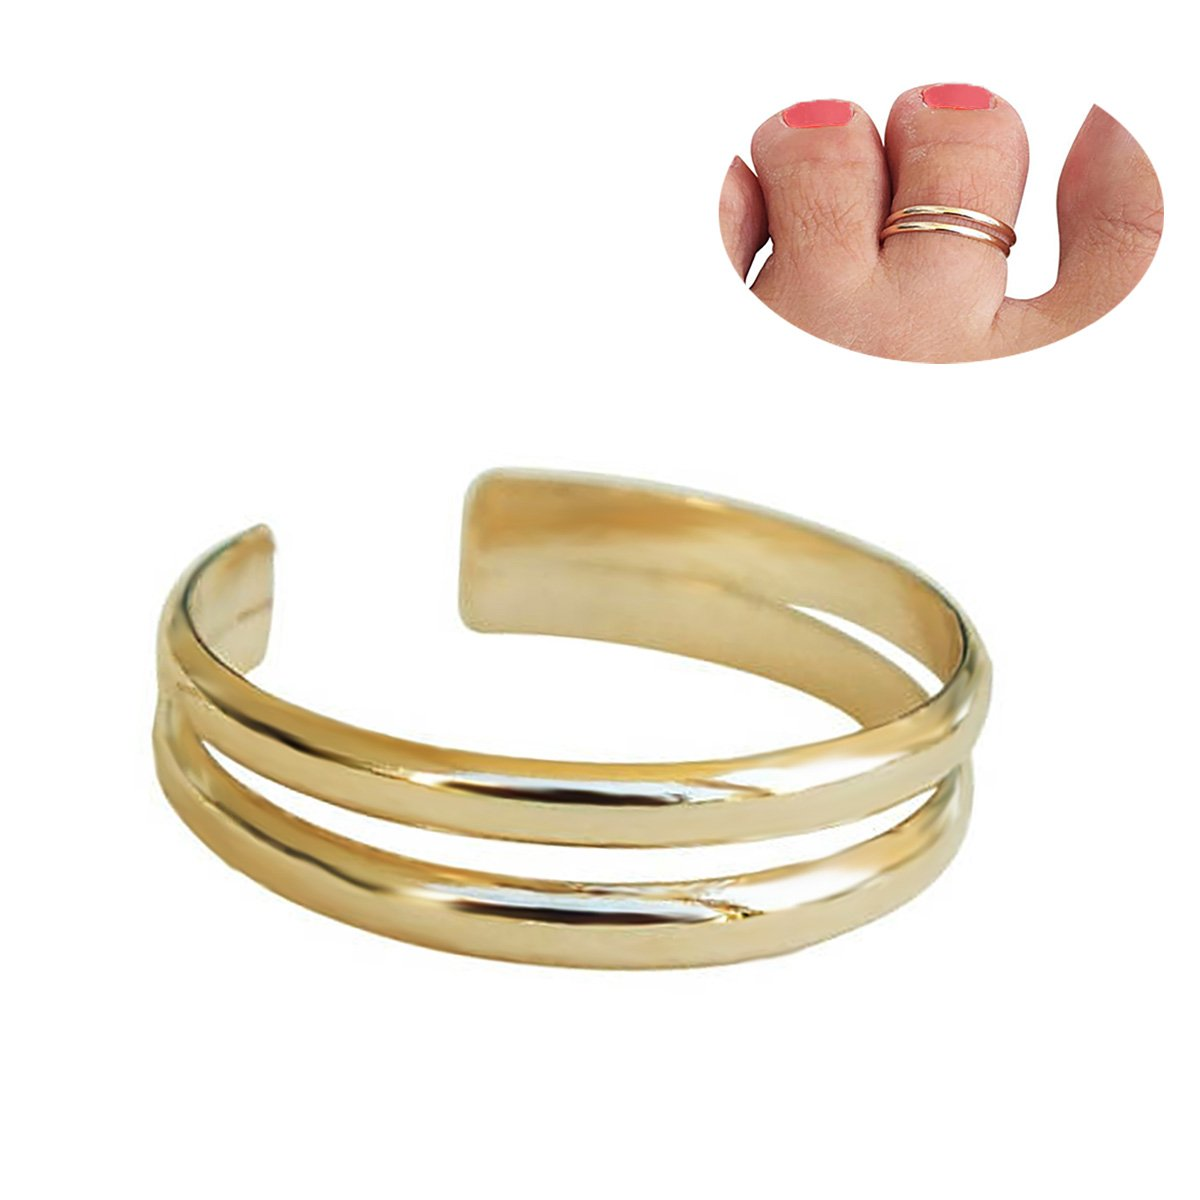 YCQHIKER Toe Ring, Midi Ring Knuckle Ring, Adjustable Ring Two Bands Ring Double Band Ring Double Lines Ring YCQHIKER Gold Toe Ring Double Lines Ring (gold) Riding Store